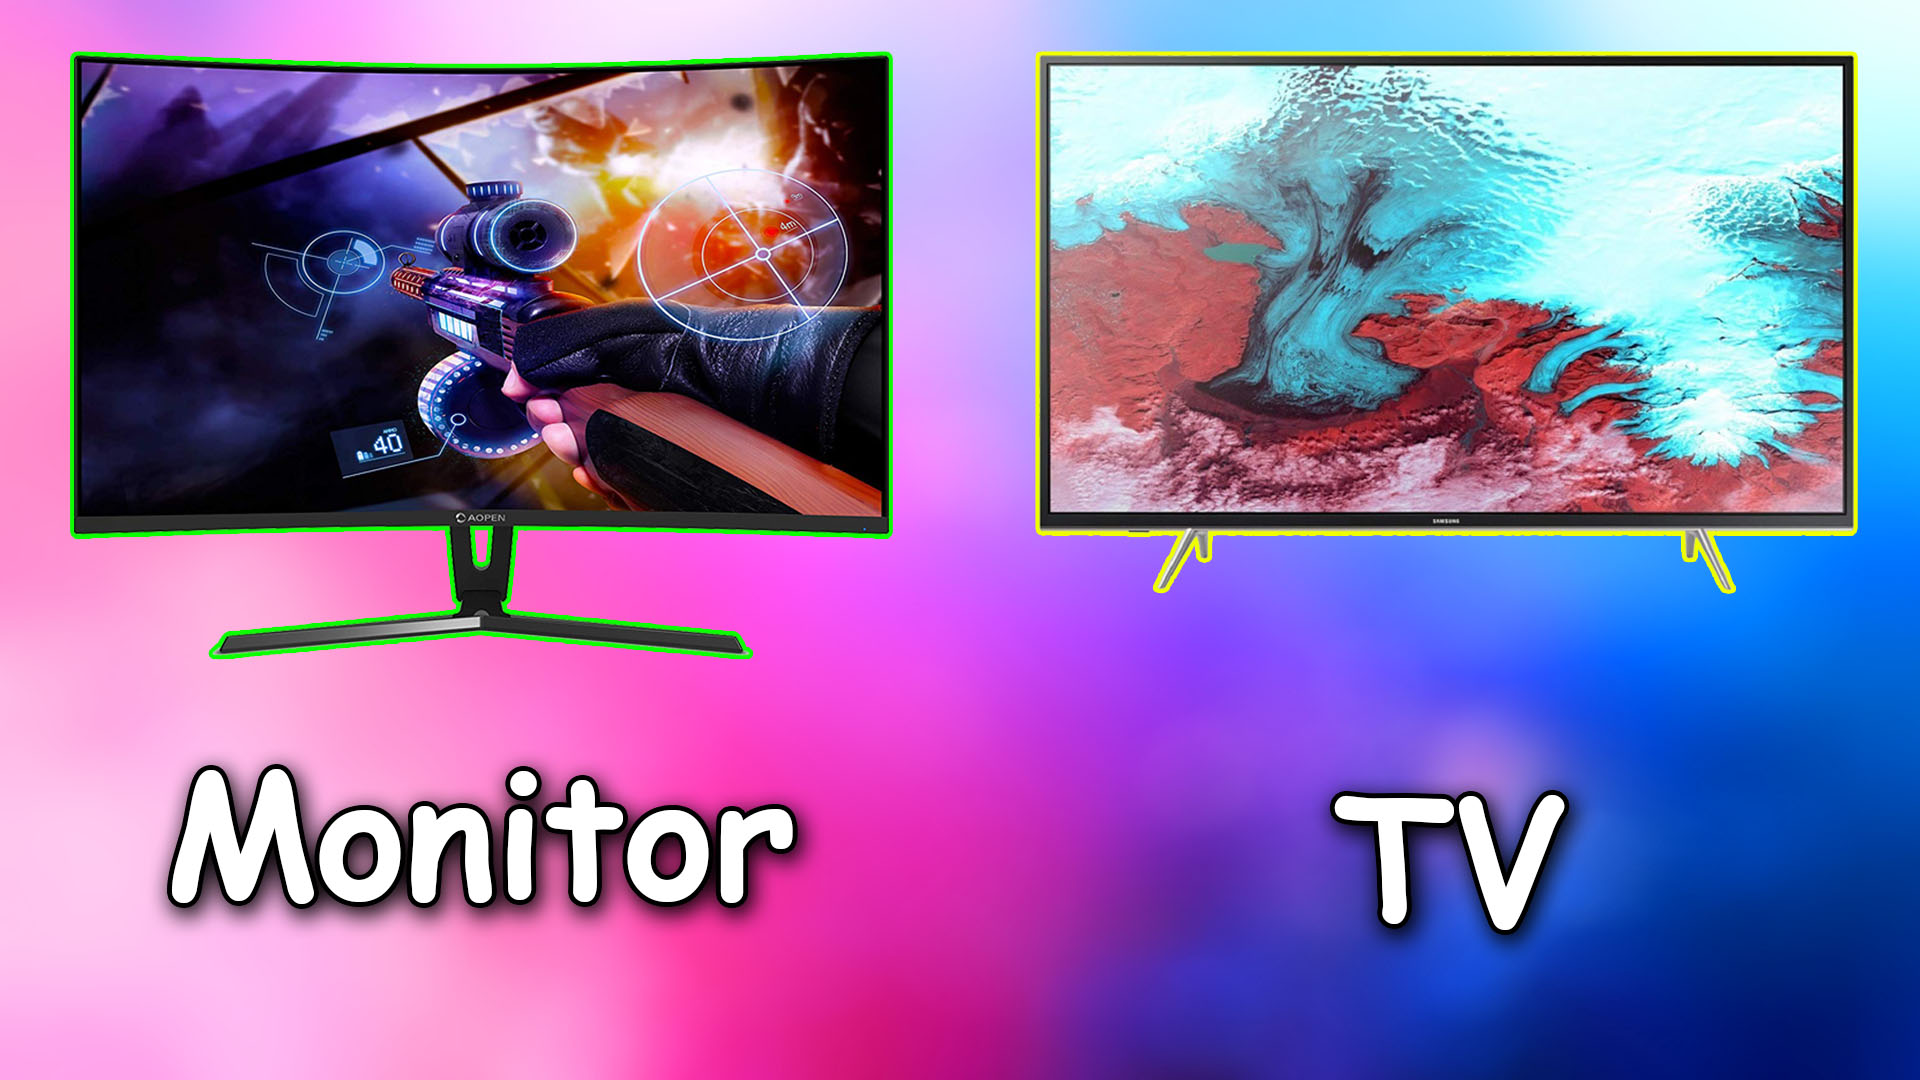 Comparison Between a TV and Monitor